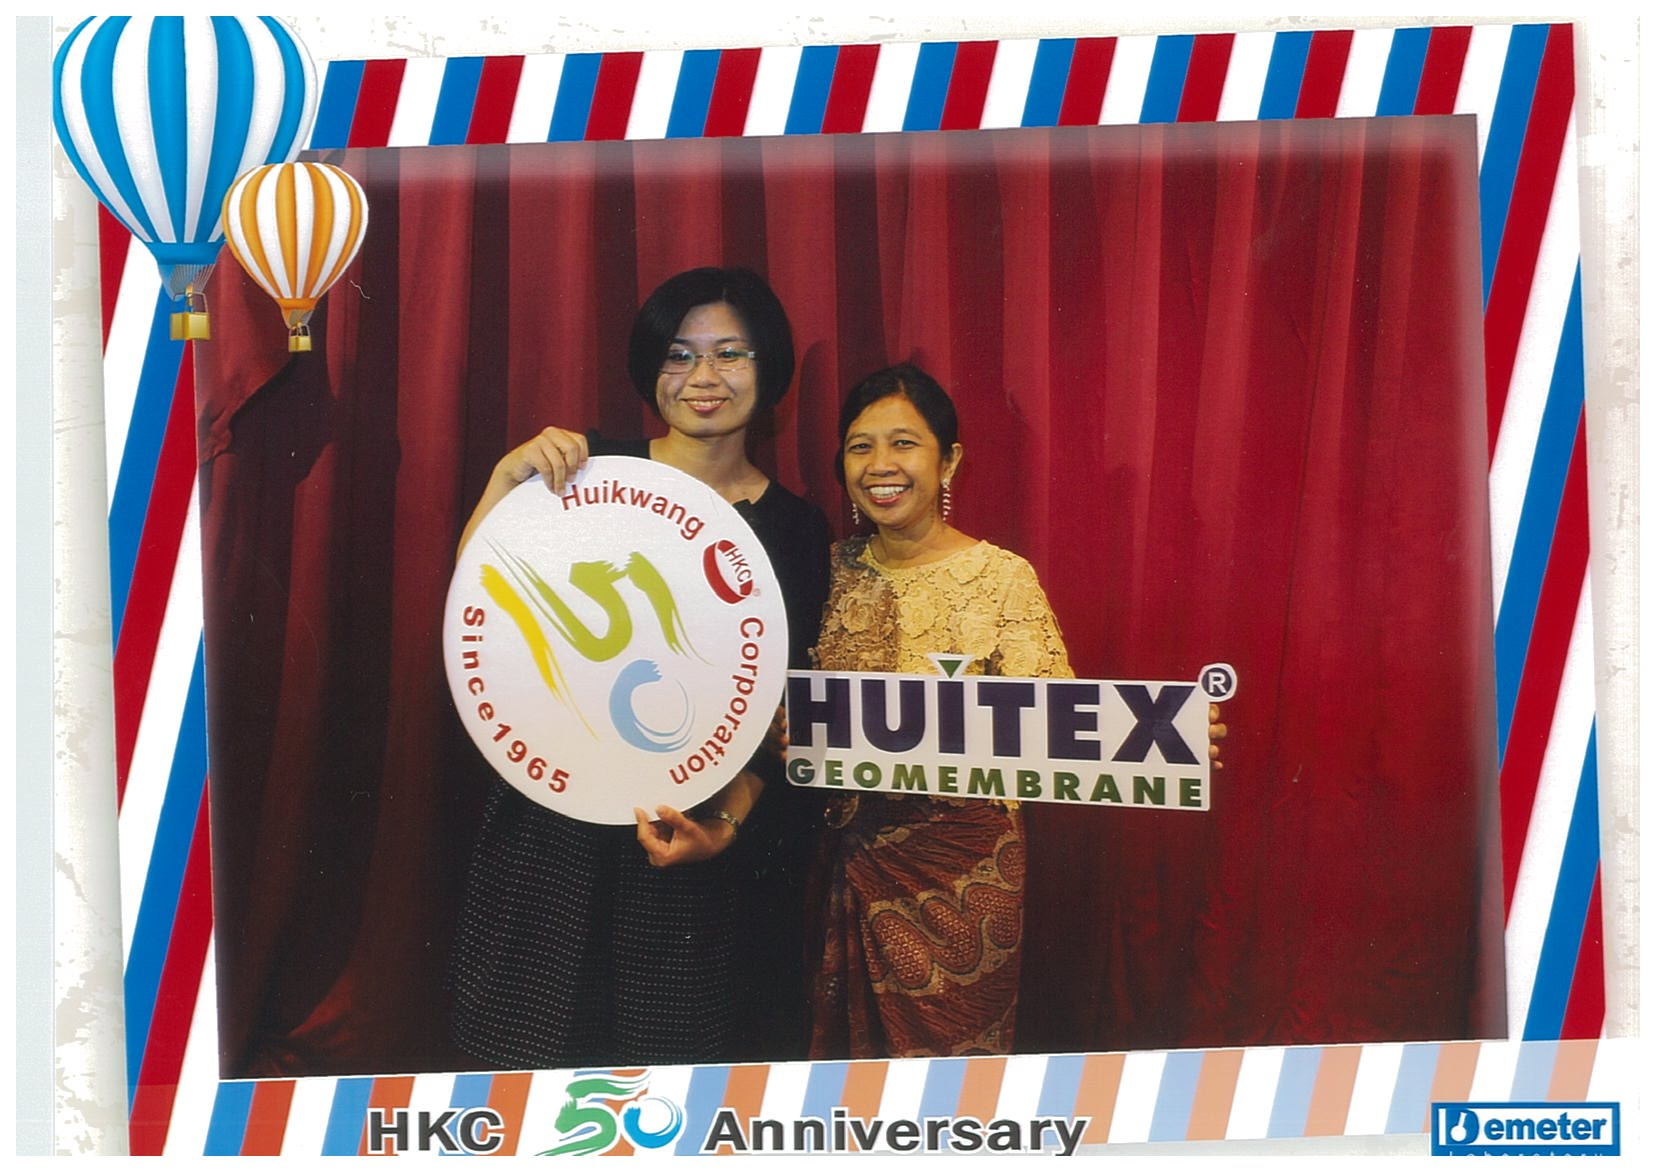 Anniversary 50th year Huikwang